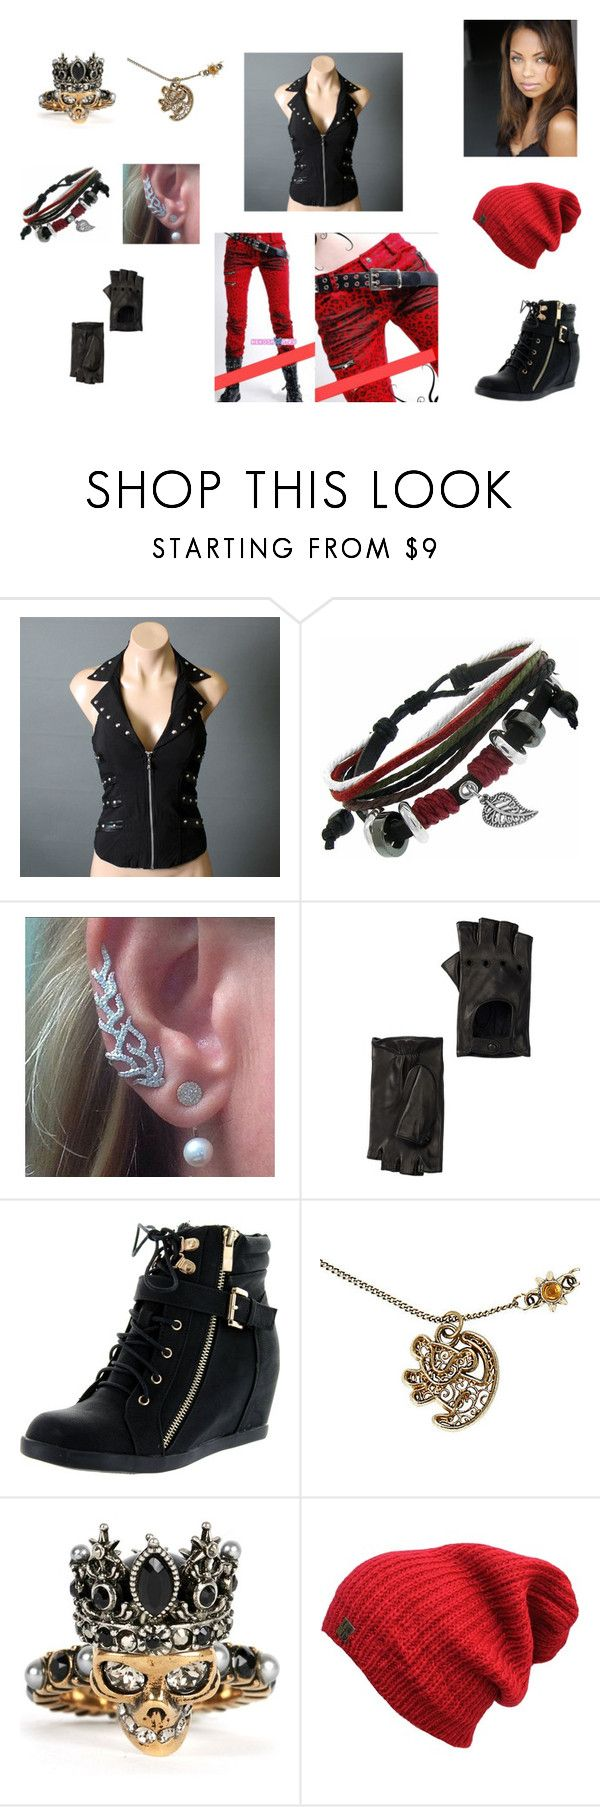 """Untitled #164"" by dhat-unique-chiqq ❤ liked on Polyvore featuring Gioelli, Portolano, Top Moda, Disney and Alexander McQueen"